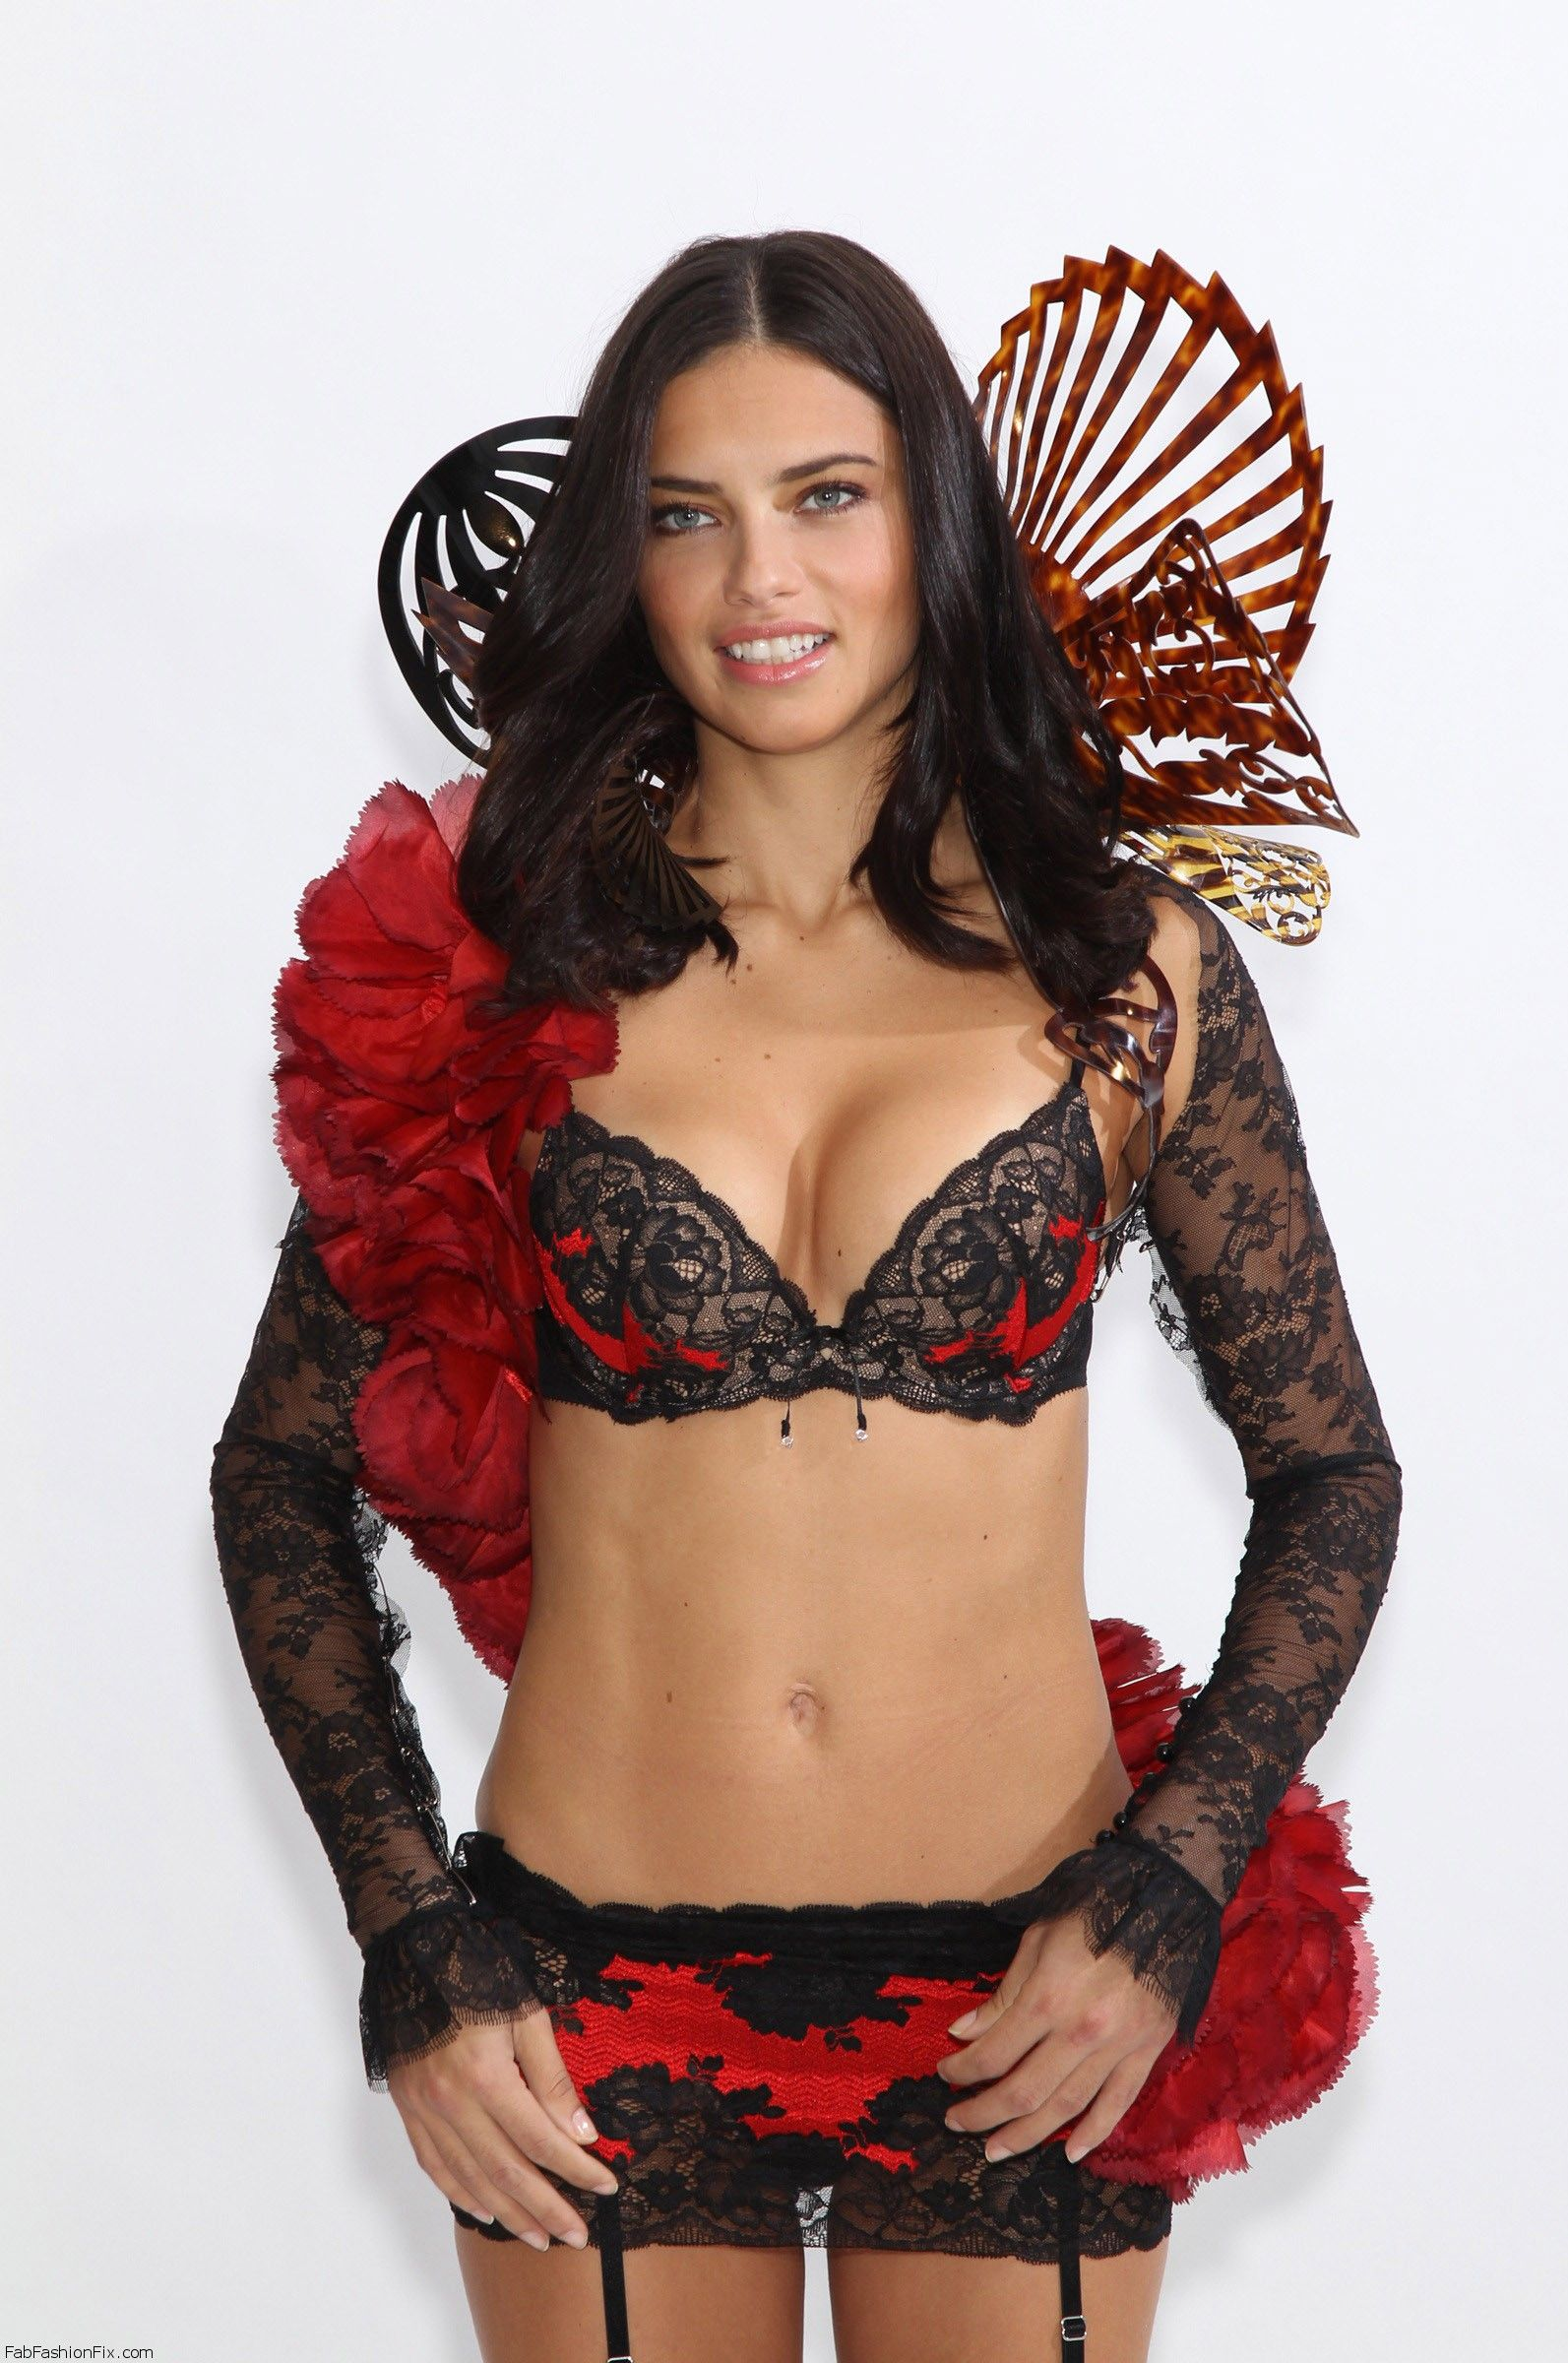 STUDIO VICTORIA'S SECRET LORS DU DEFILE